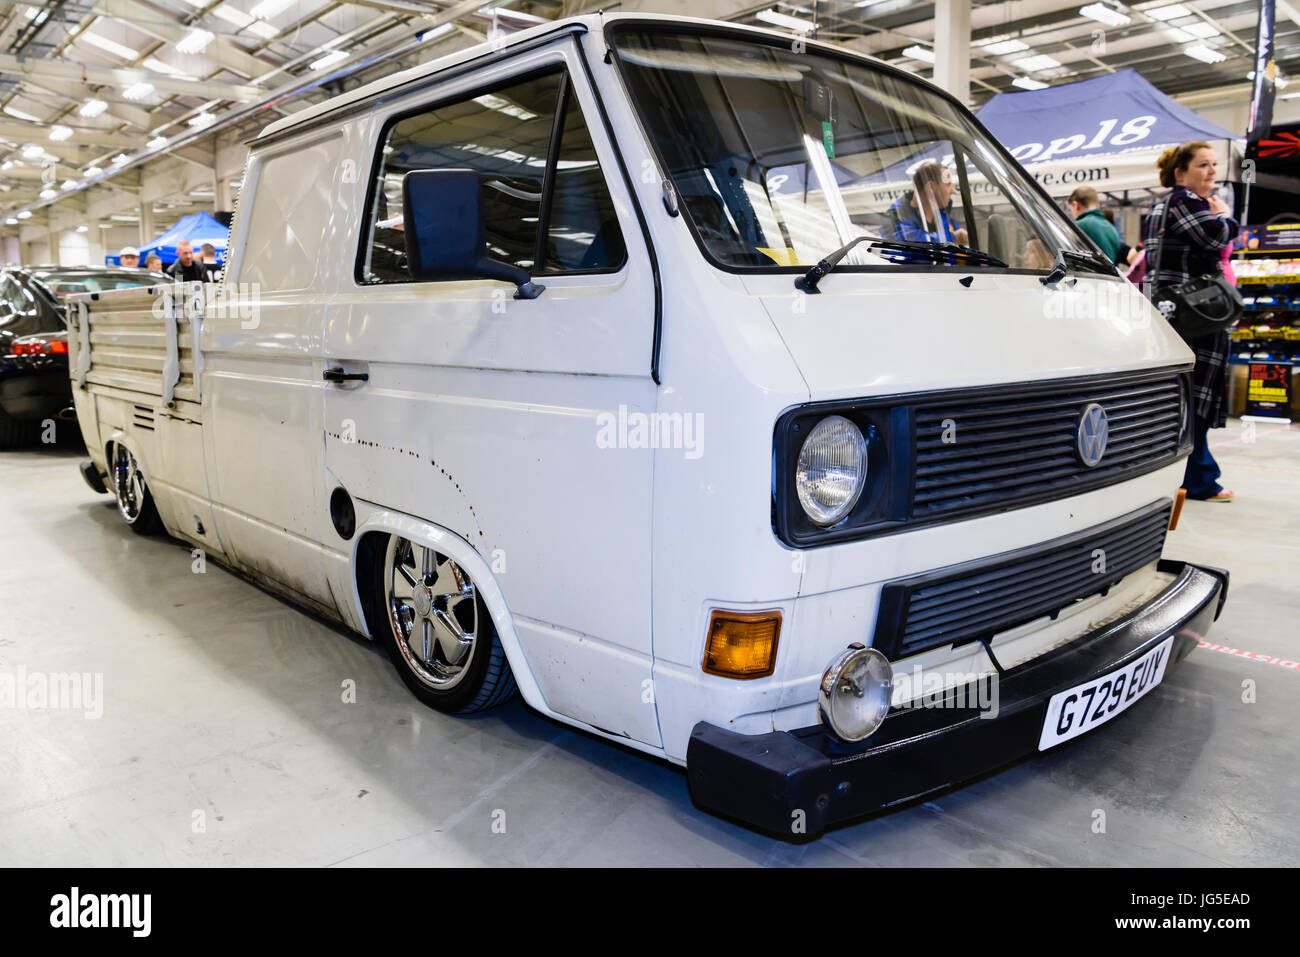 1985 VW Transporter DOKA 1.9 diesel double cab truck with lowered suspension and chrome alloy wheels. - Stock Image